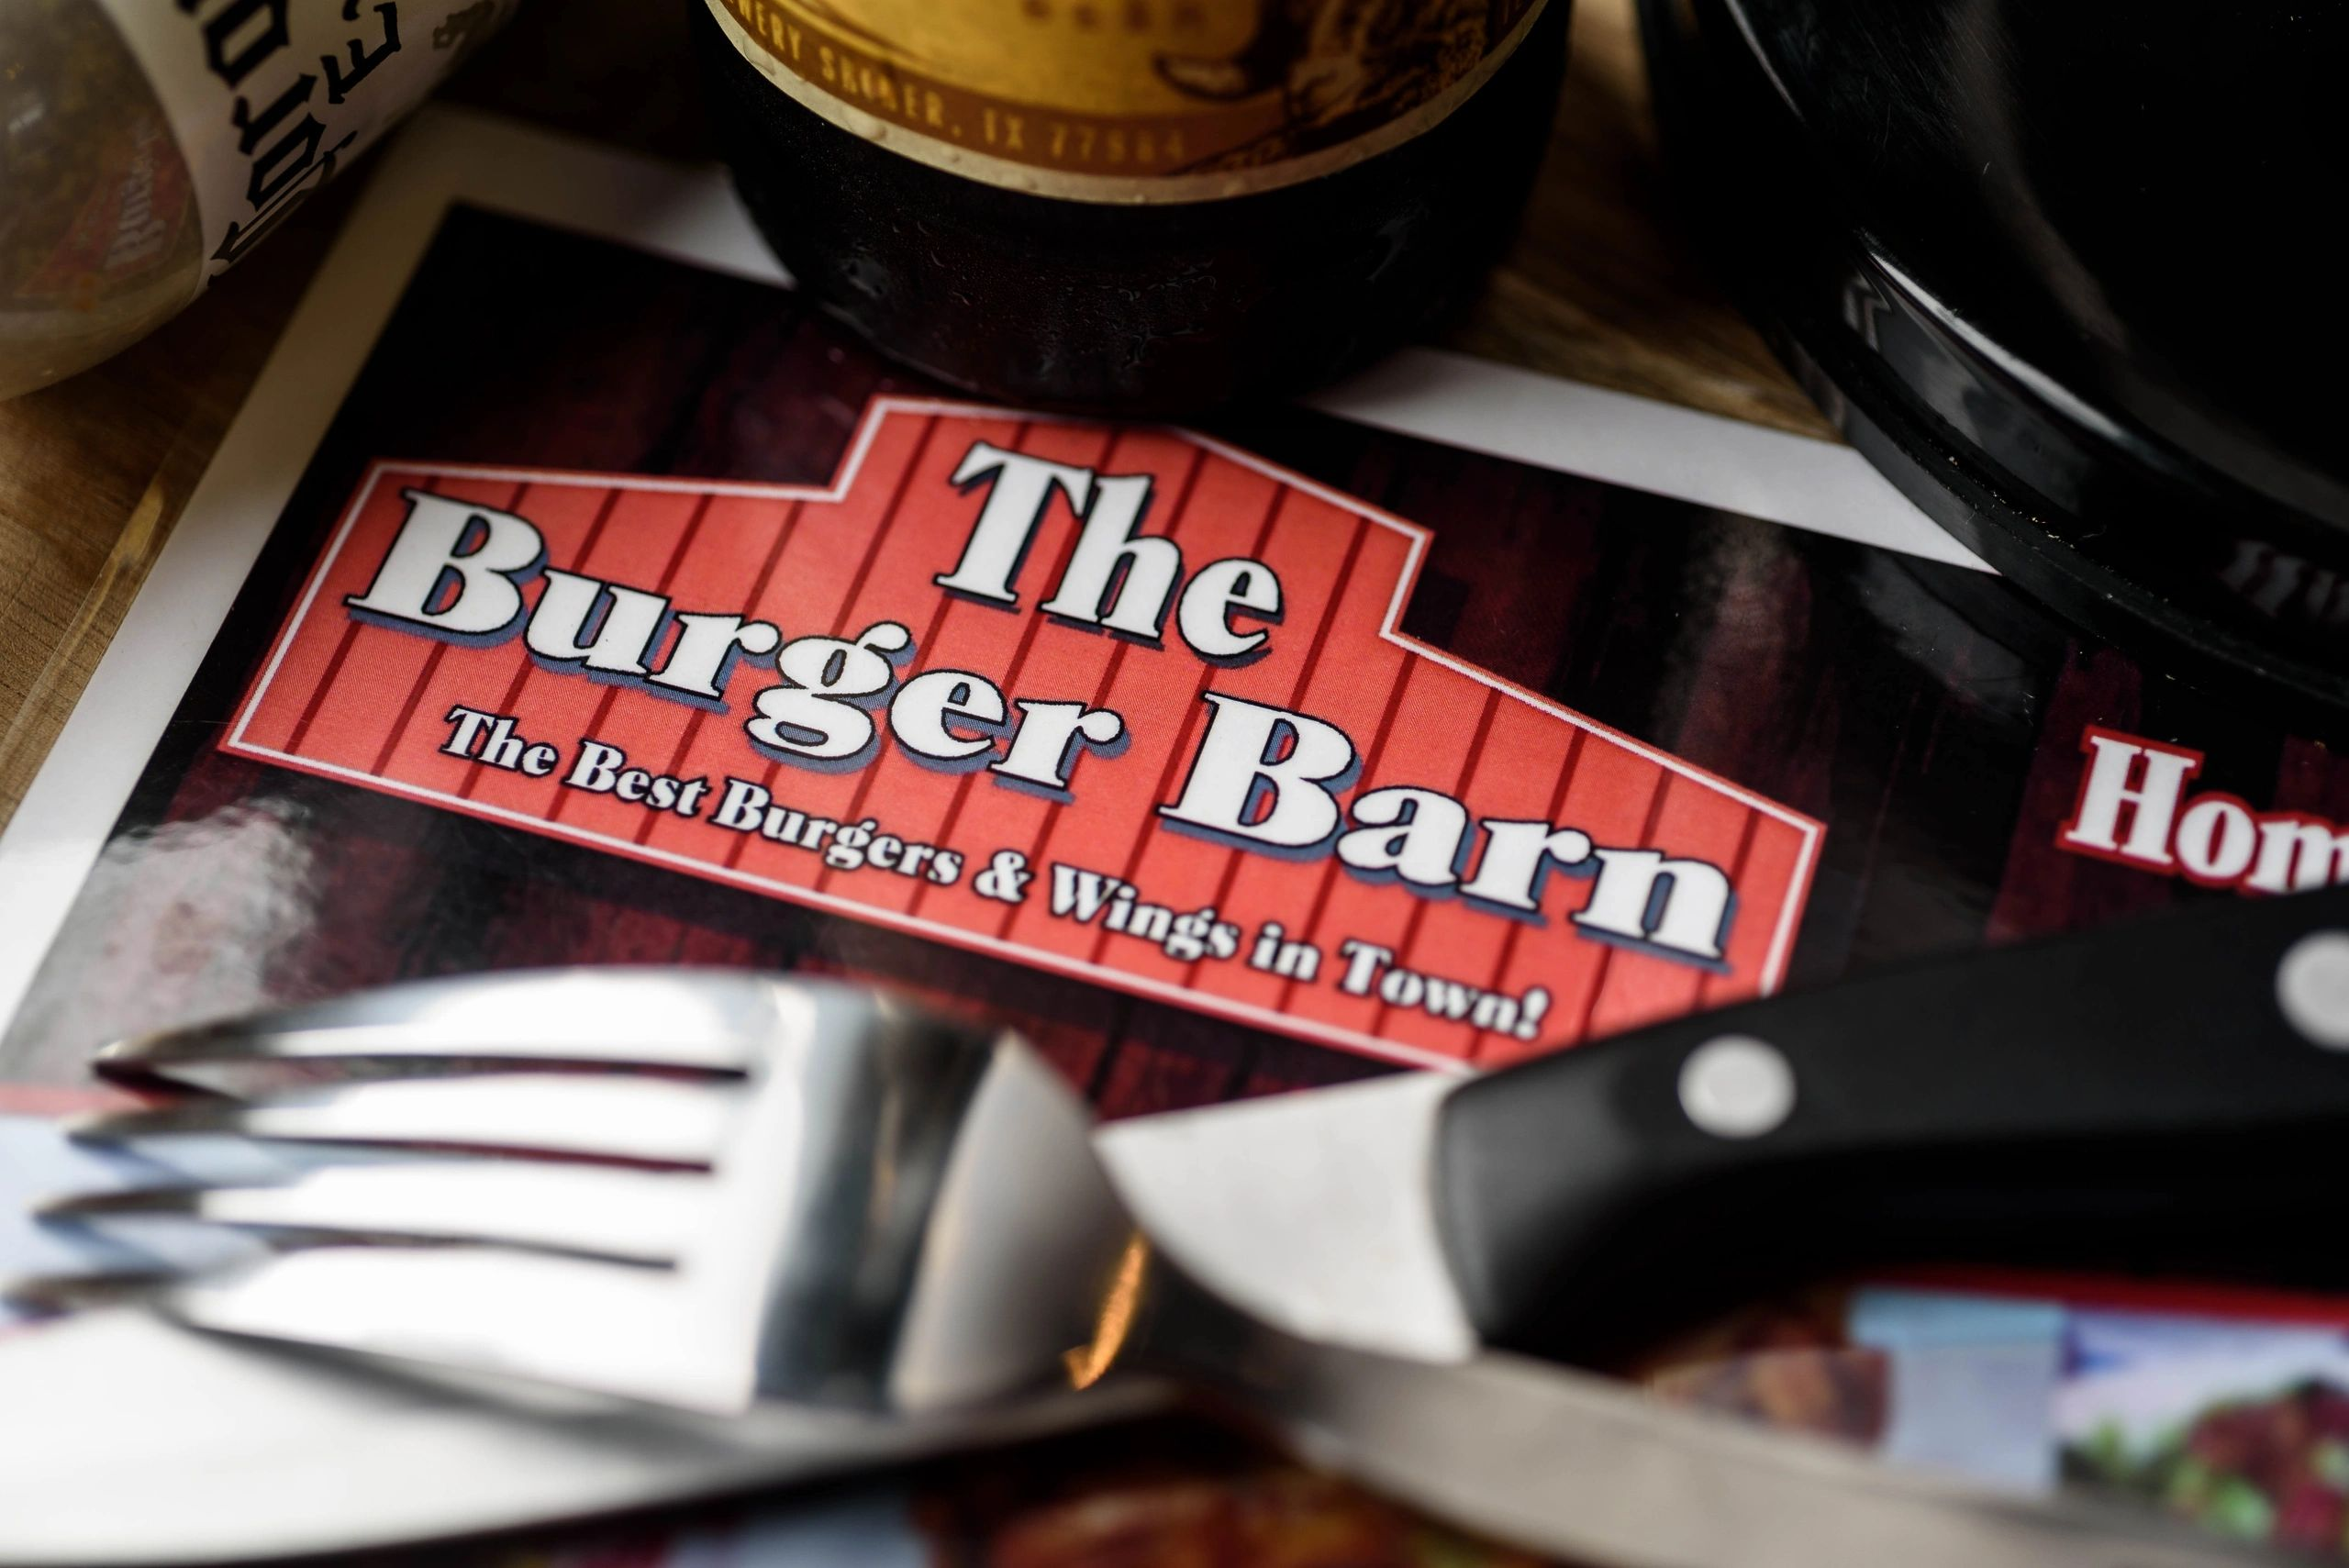 Burgers, Restaurant, Wings - The Burger Barn - Baytown, Texas